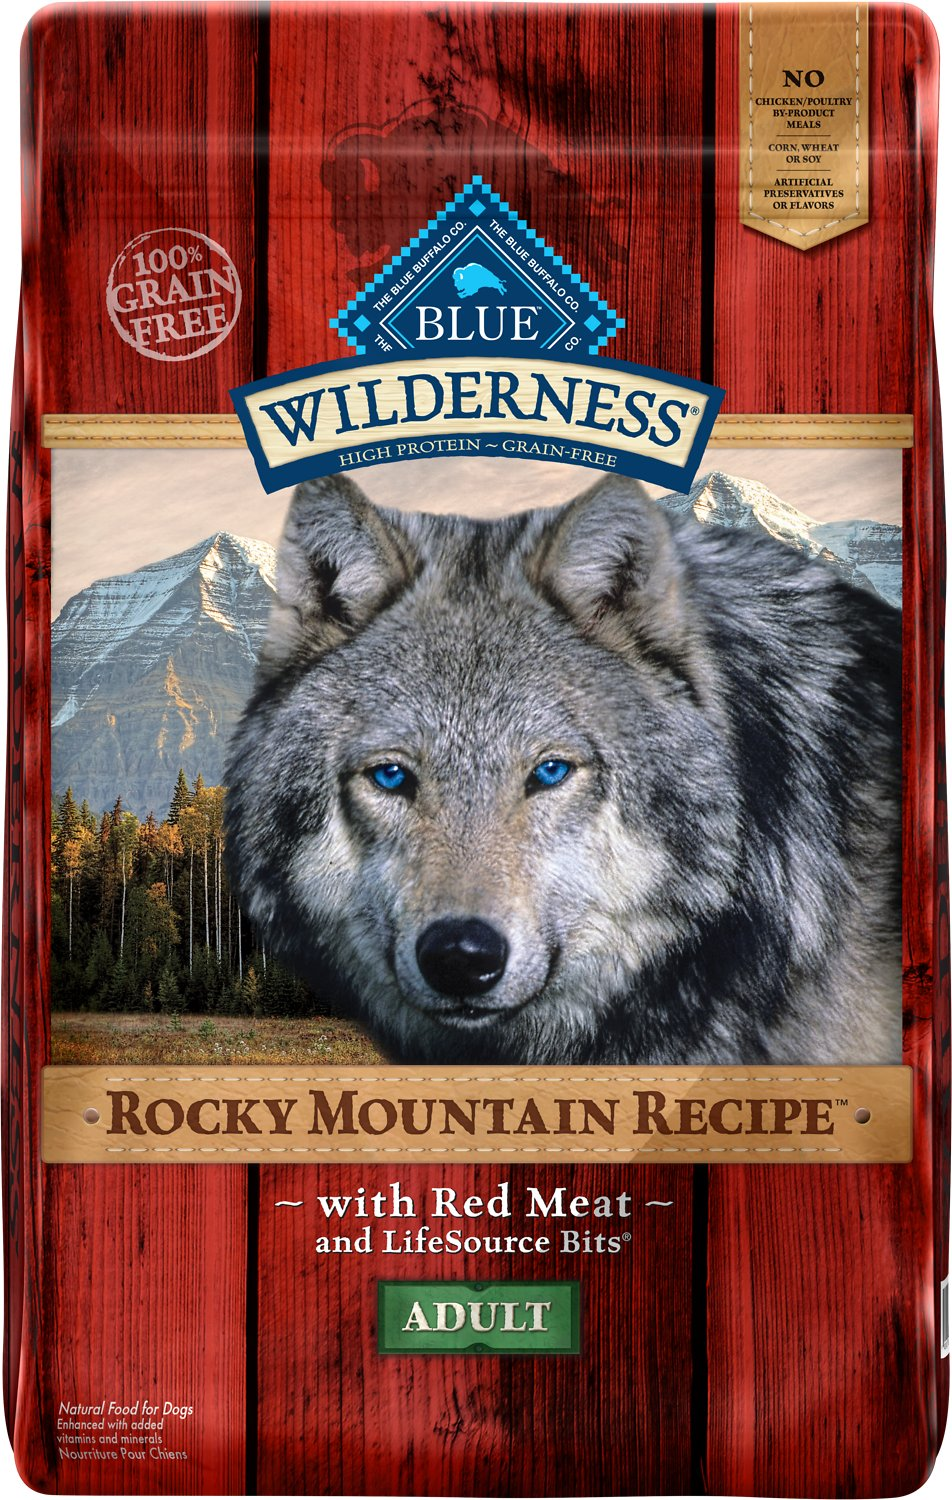 Blue Buffalo Wilderness Rocky Mountain Recipe with Red Meat Adult Grain-Free Dry Dog Food Image